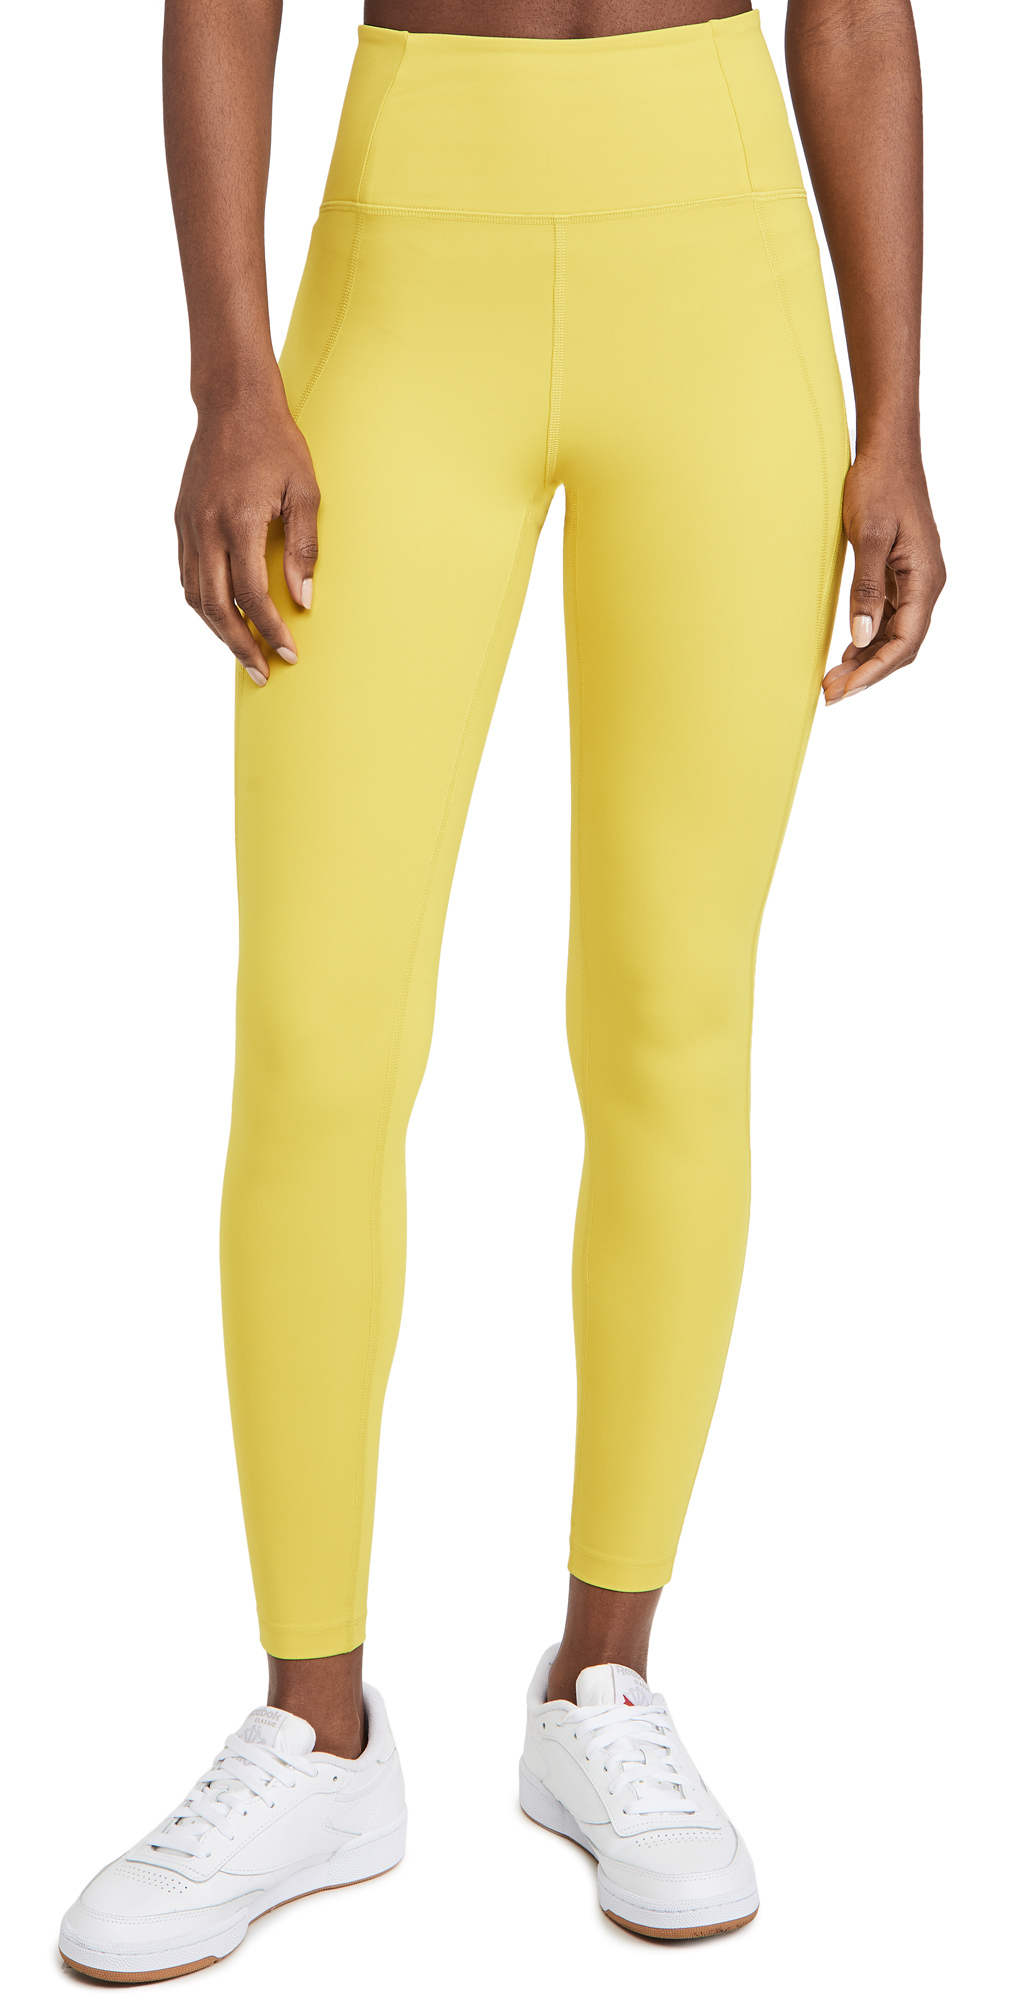 Girlfriend Collective Lemon Compressive High-rise Legging In Chartreuse